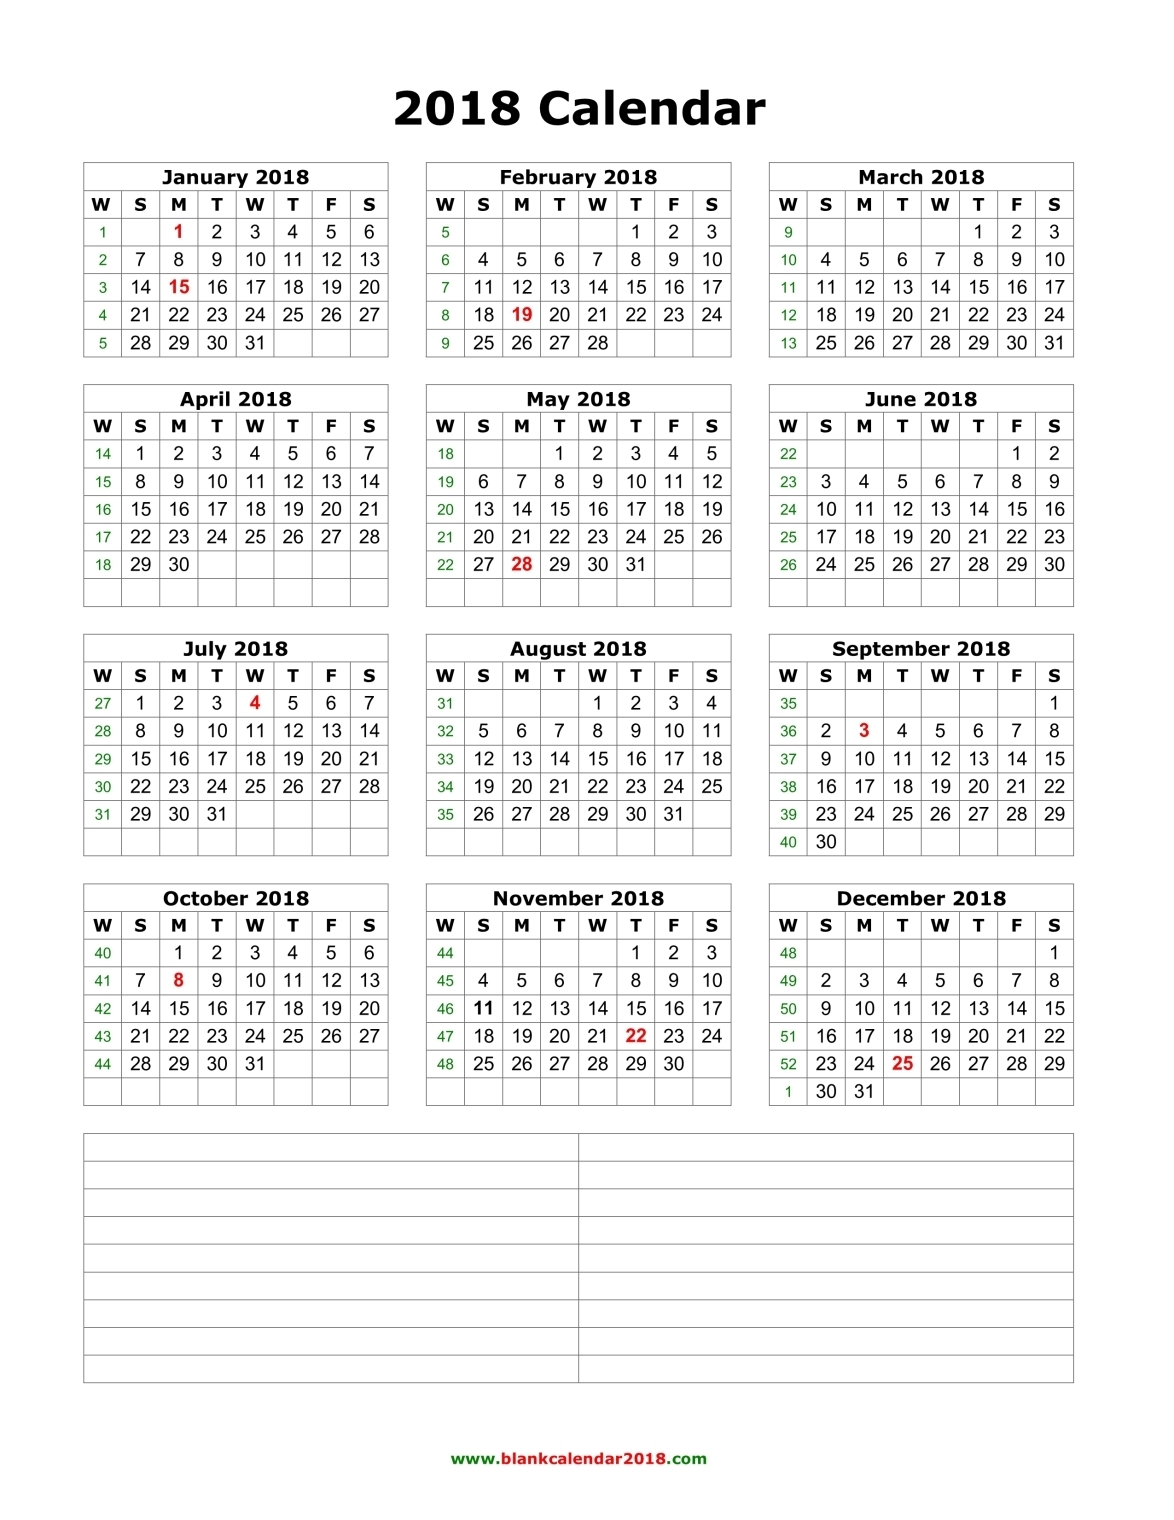 Year Calendar Pretty : Pretty calendar printable one page with space for